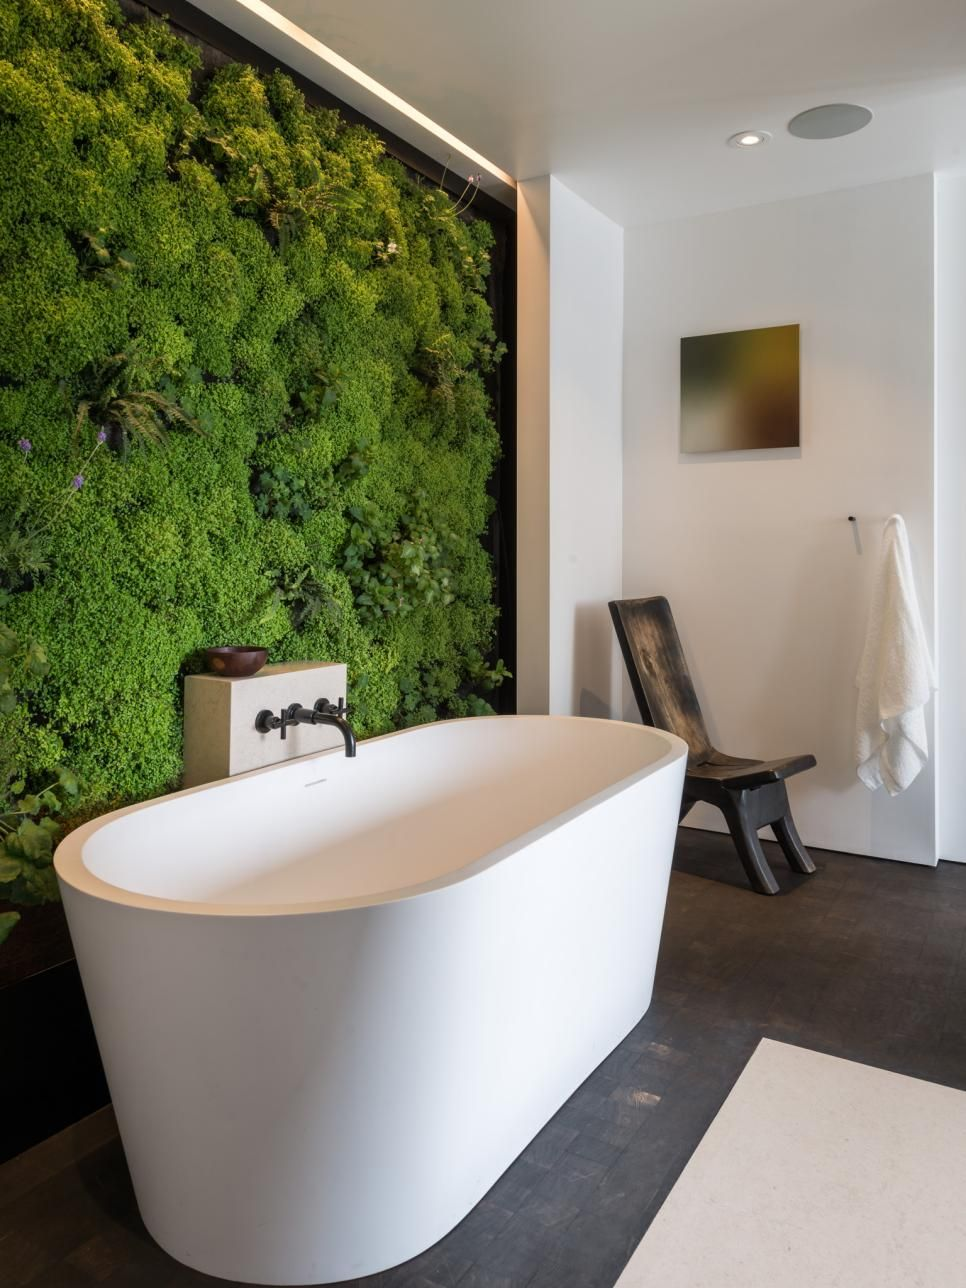 Pictures of Beautiful Luxury Bathtubs - Ideas & Inspiration ...